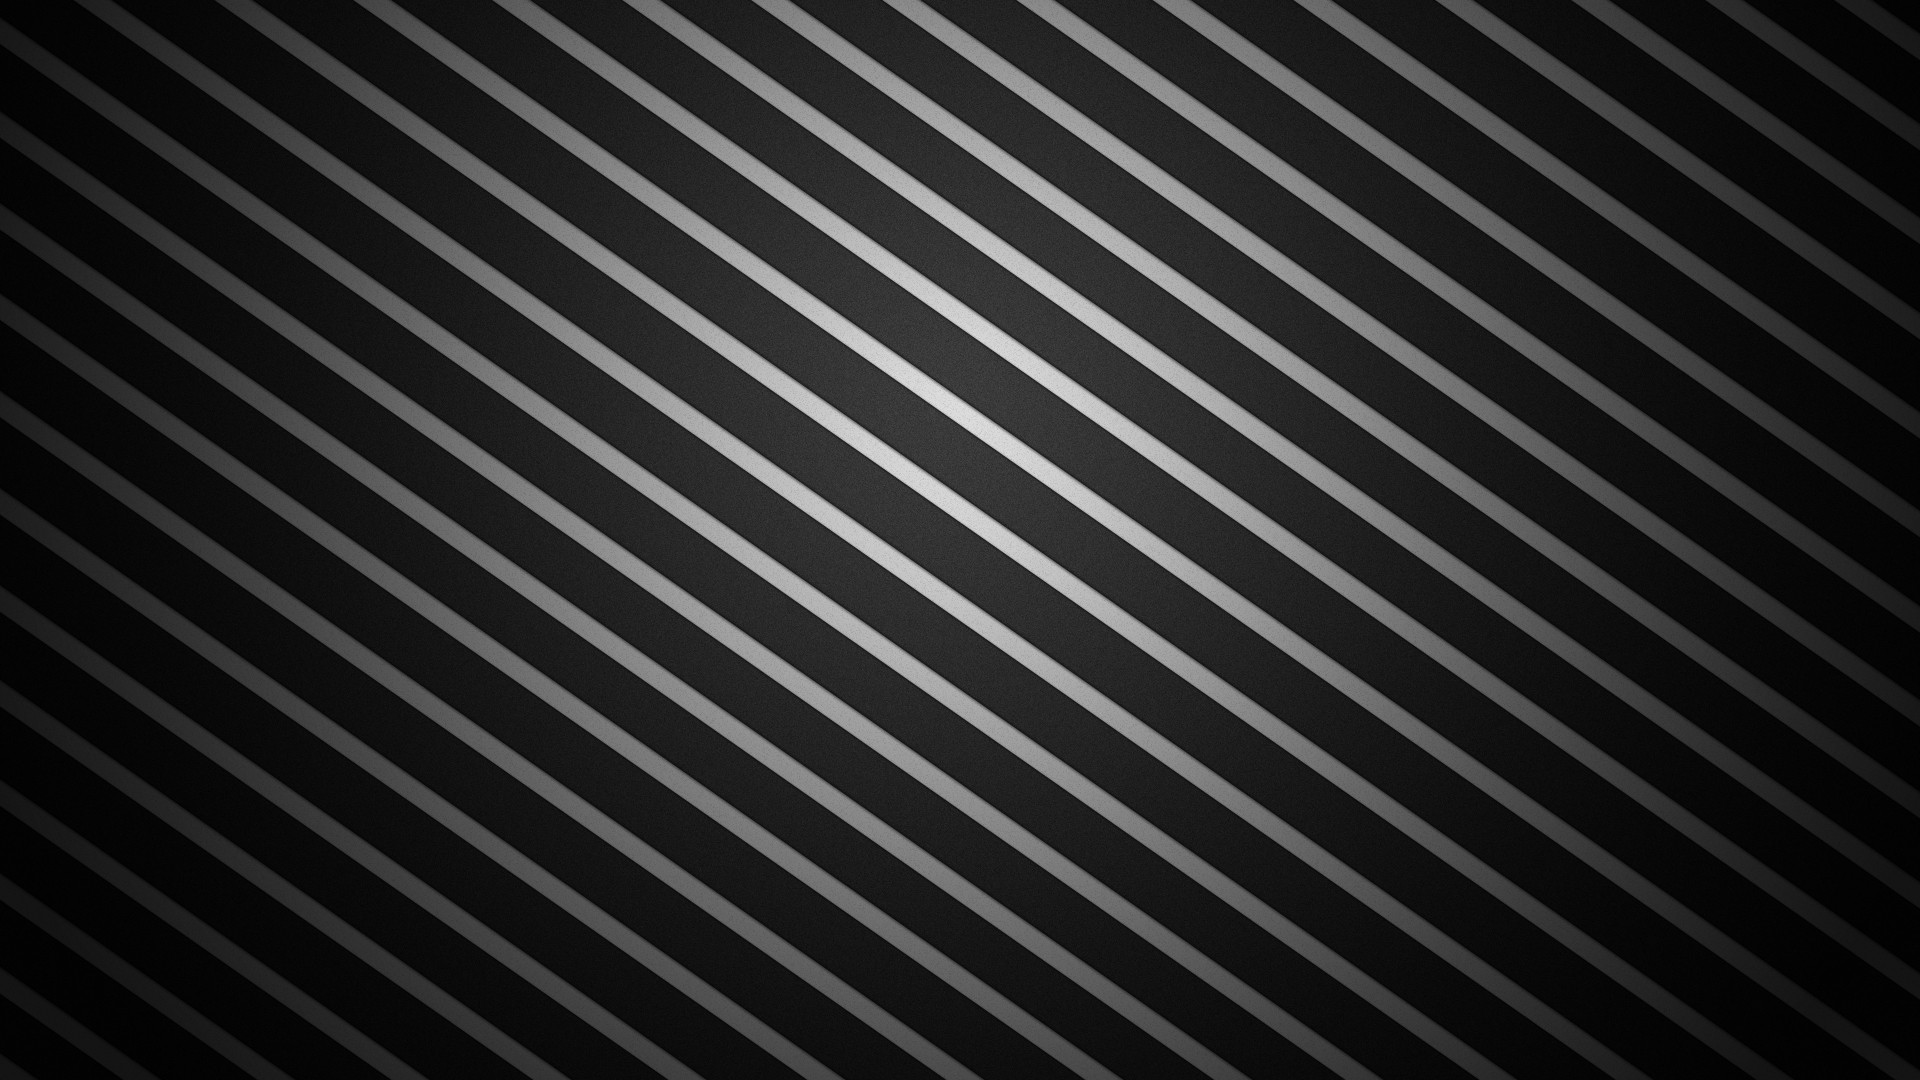 52 Black Backgrounds For Mac and Desktop Machines